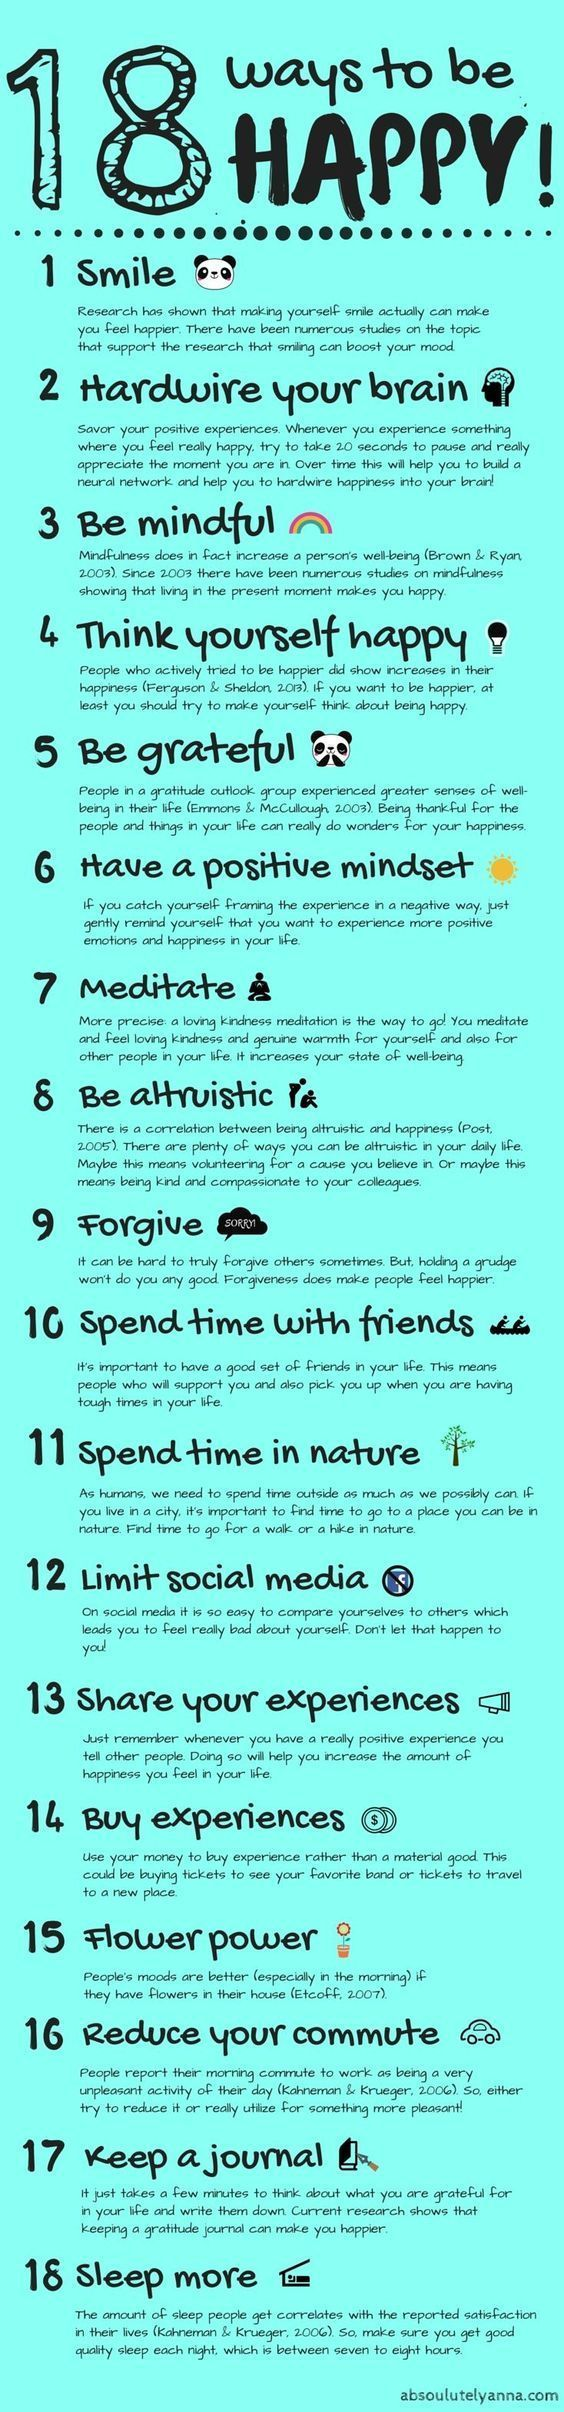 18 simple AND scientifically proven ways to live a little happier! For this post, Id like to give you some tips on how you can experience more happiness in your everyday life. Ive compiled a list of 1